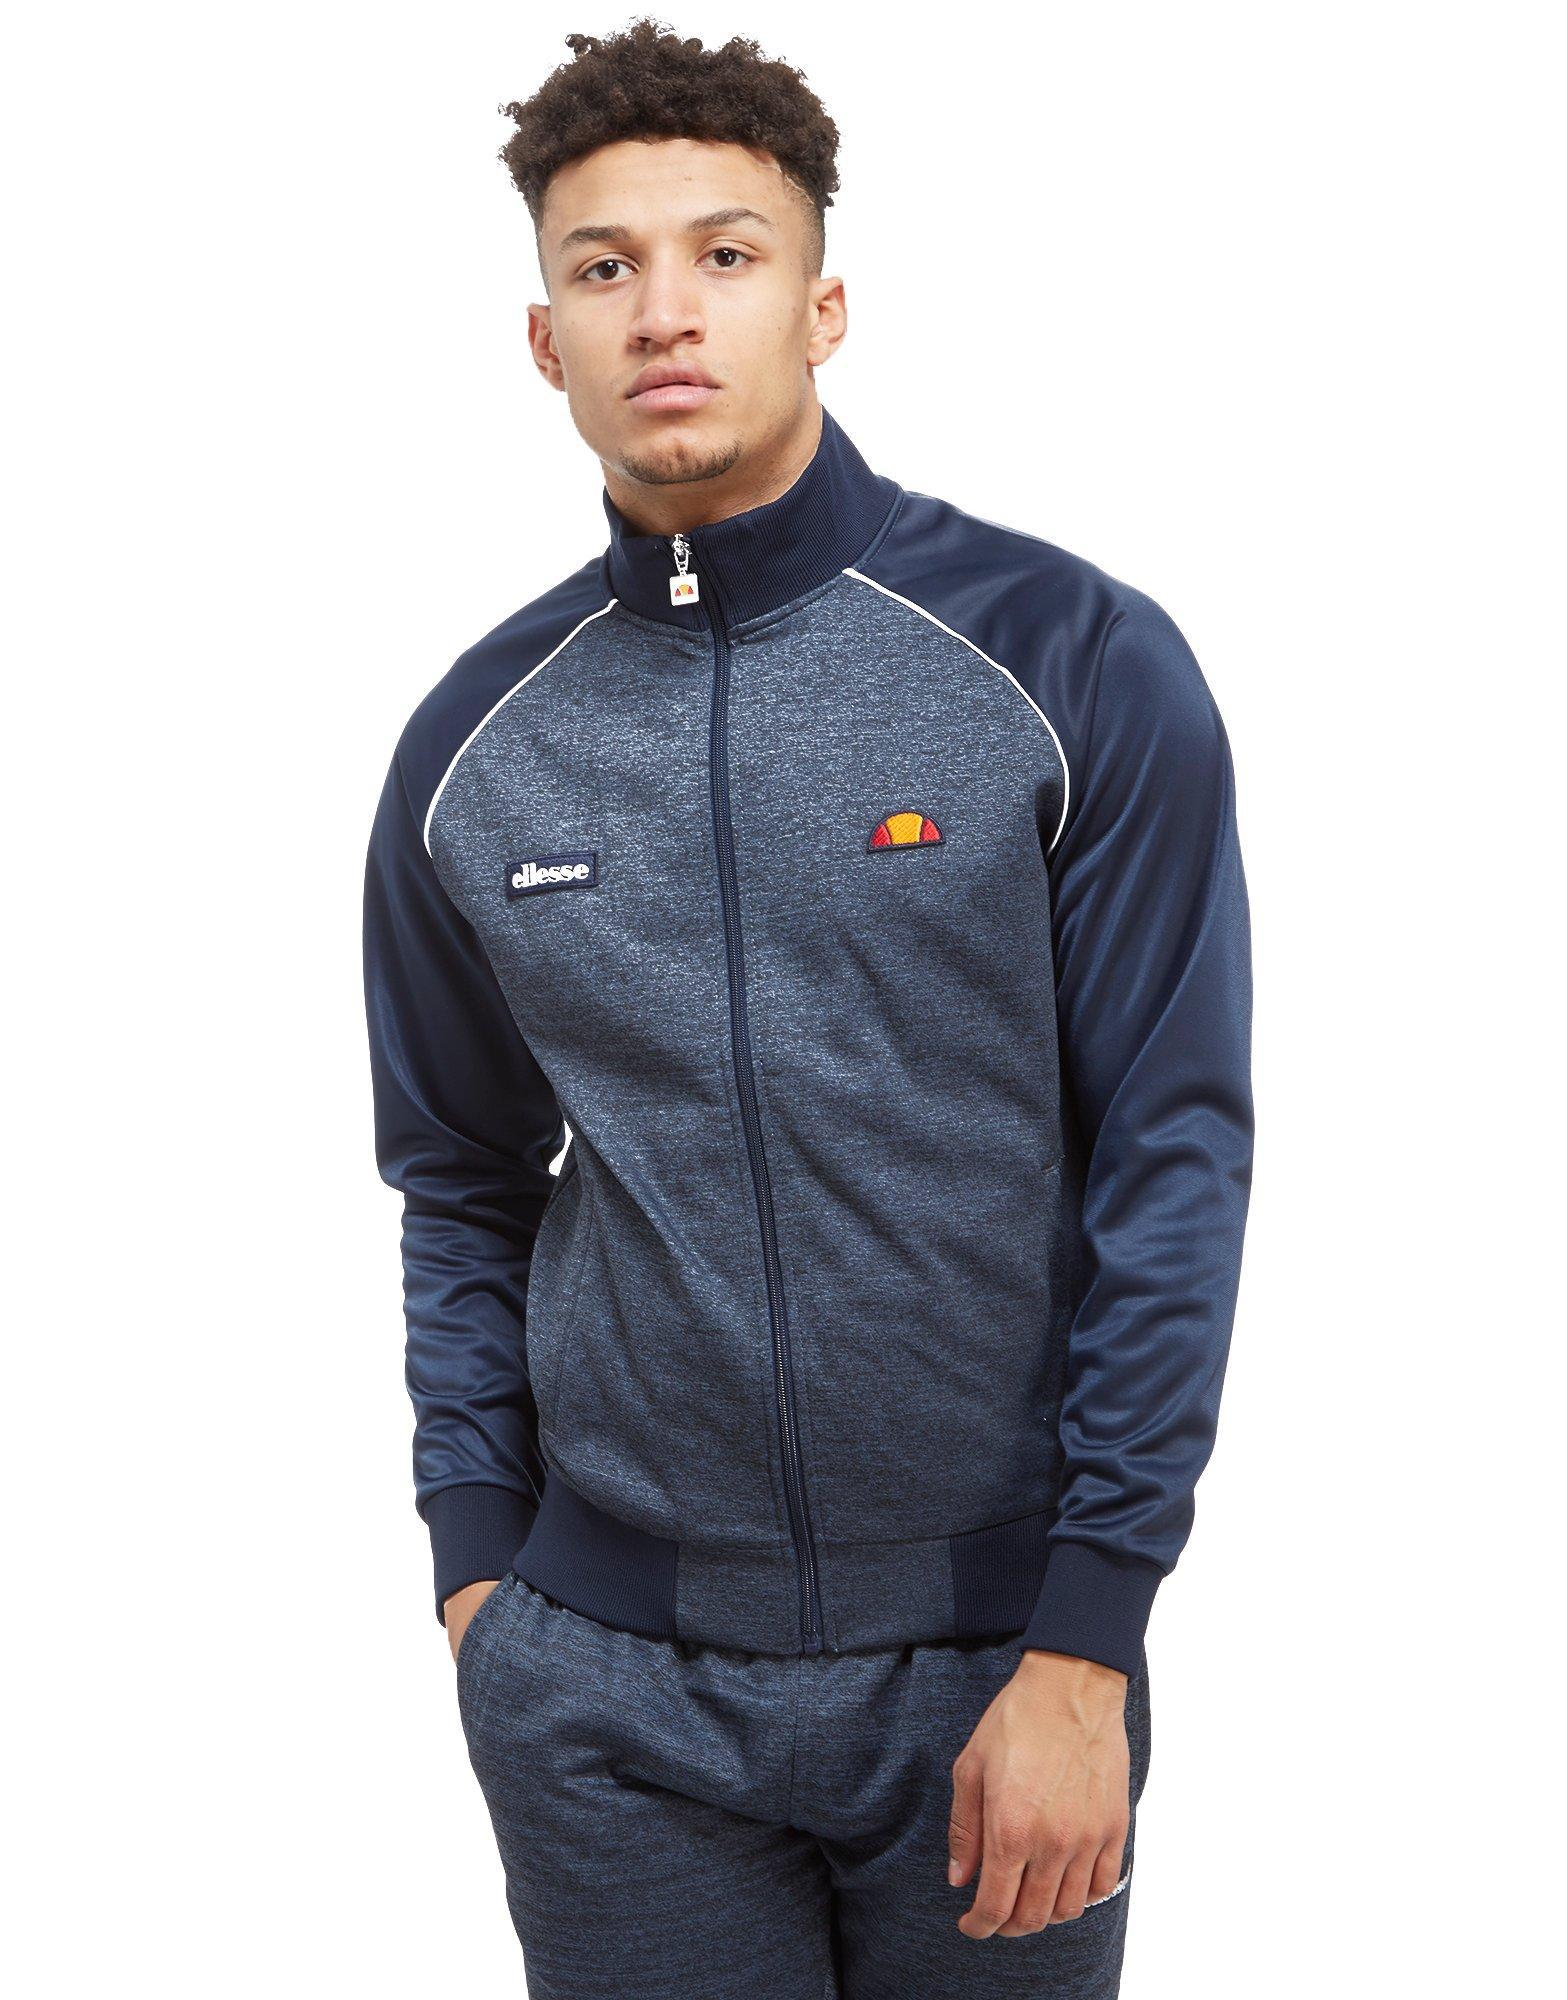 5d8c6dba Ellesse Bonucci Poly Track Top in Blue for Men - Lyst